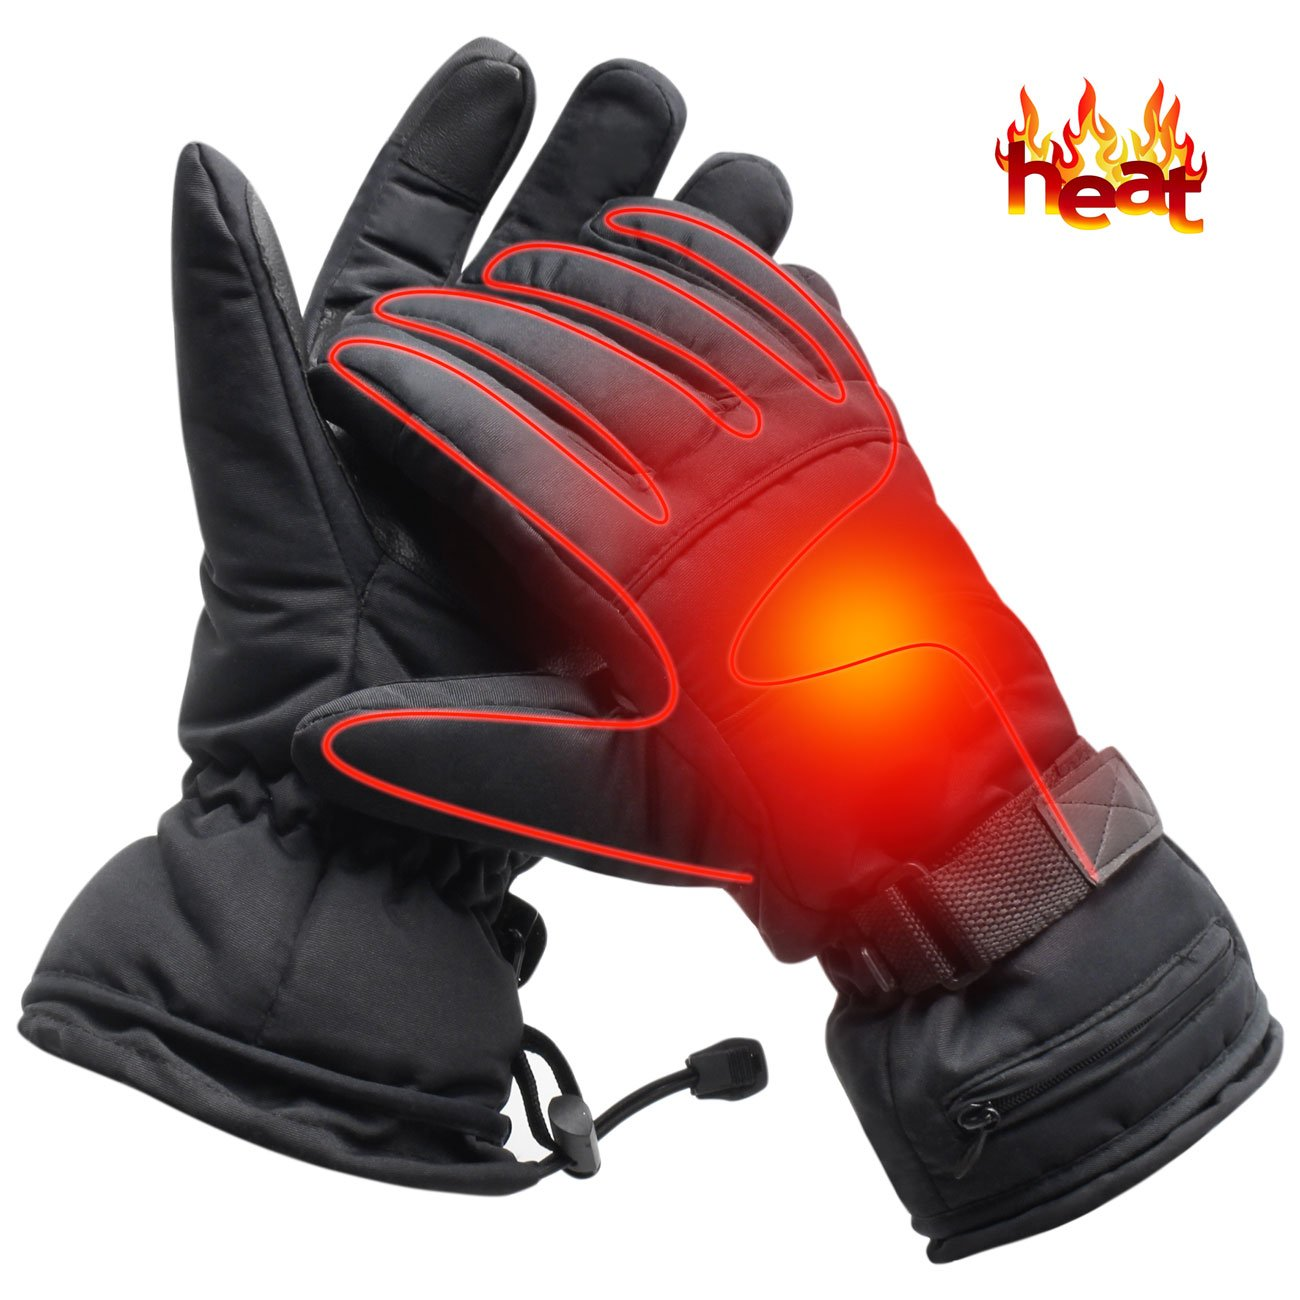 Heated Gloves Men Woman Electric Btteries Gloves Hand Warmers Motorcycle Gloves with 3.7 V 3200mAh Rechargeable Batteries Heating Gloves by MMlove